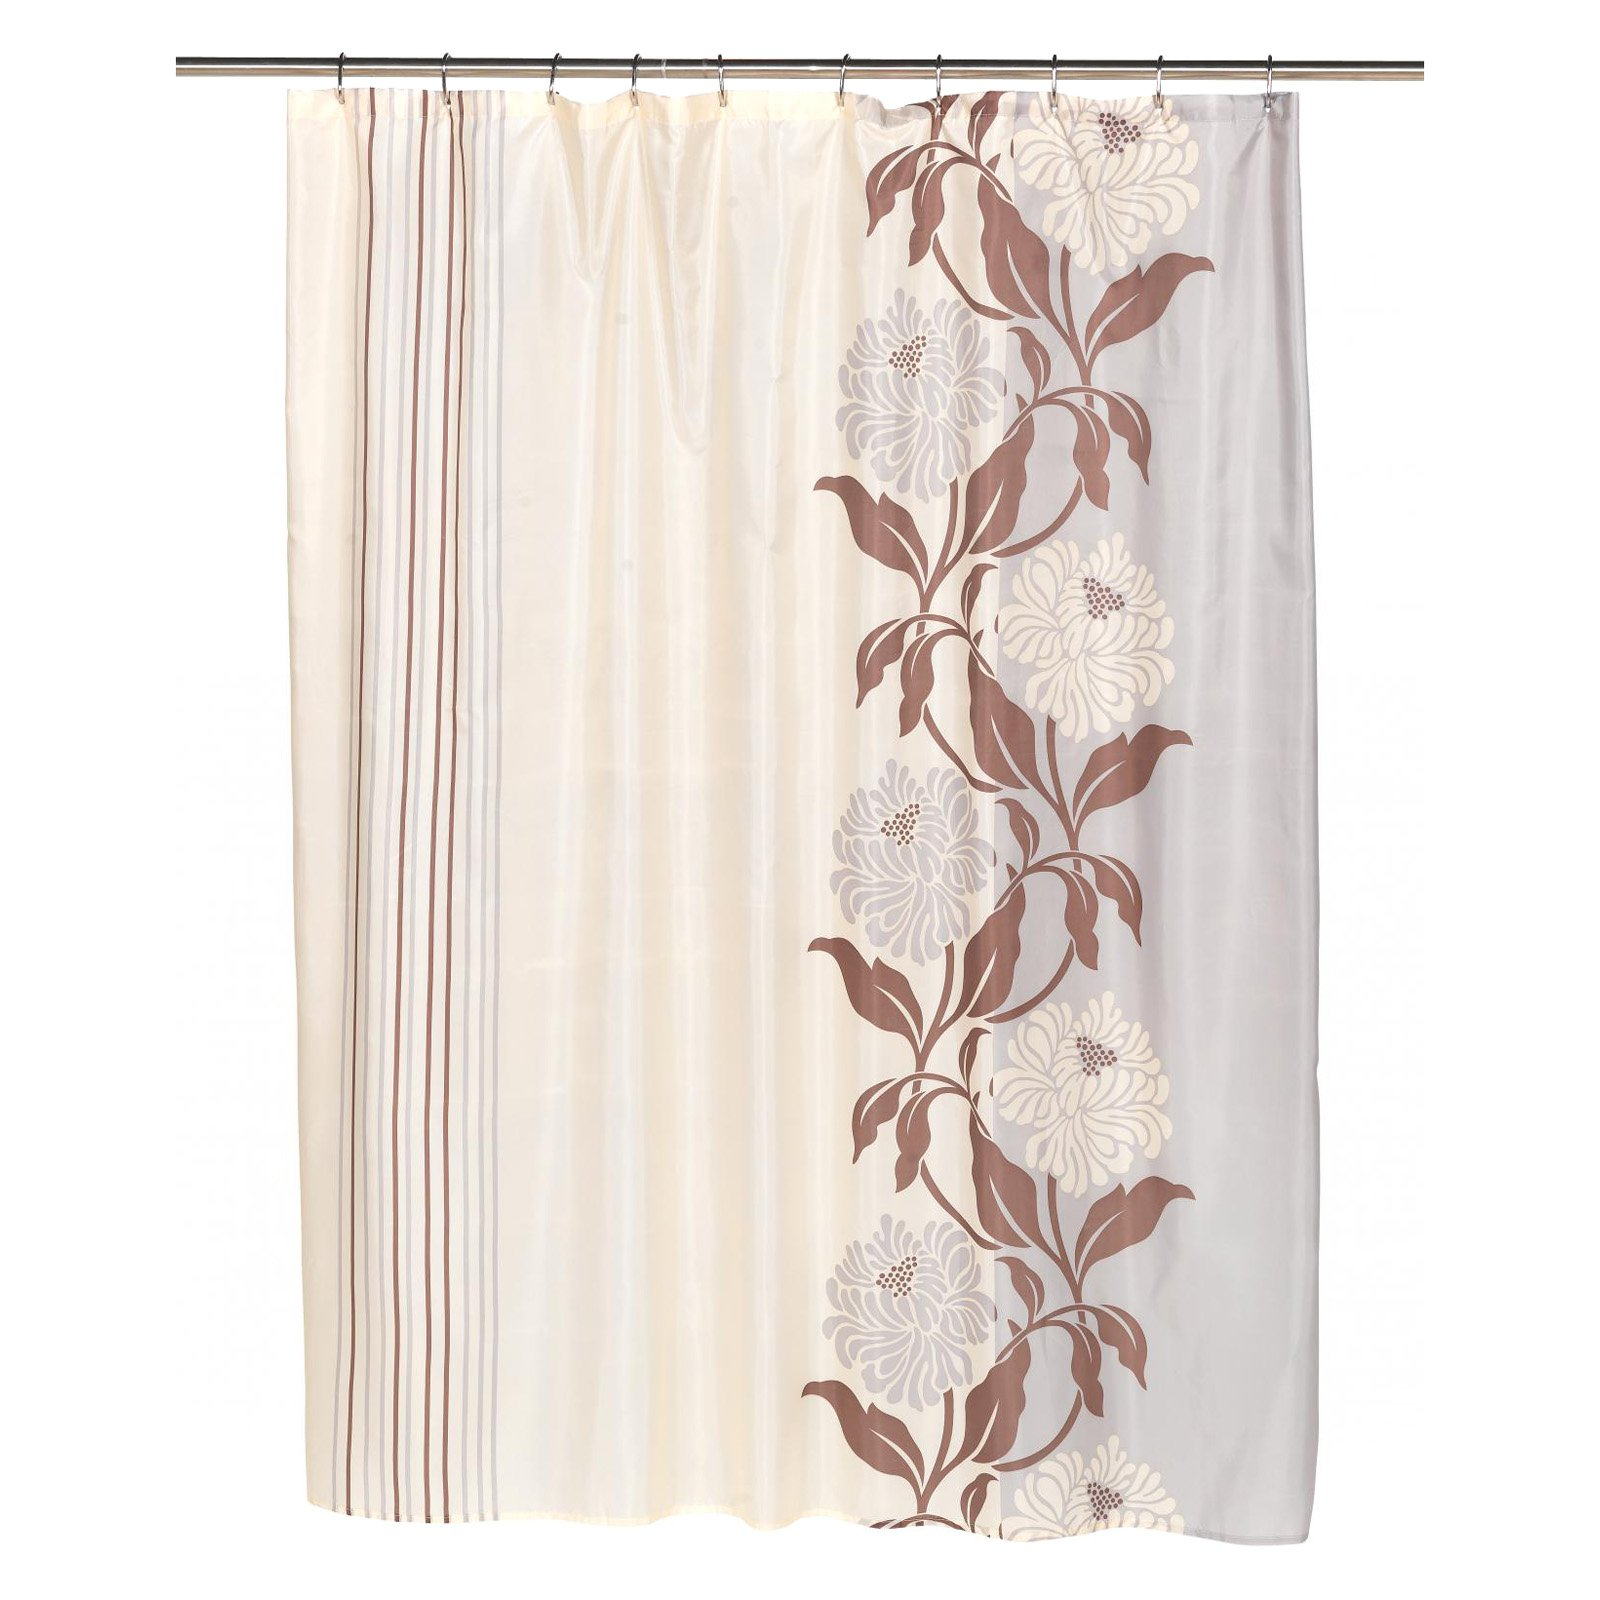 Carnation Home Fashions Chelsea Fabric Shower Curtain by Carnation Home Fashions